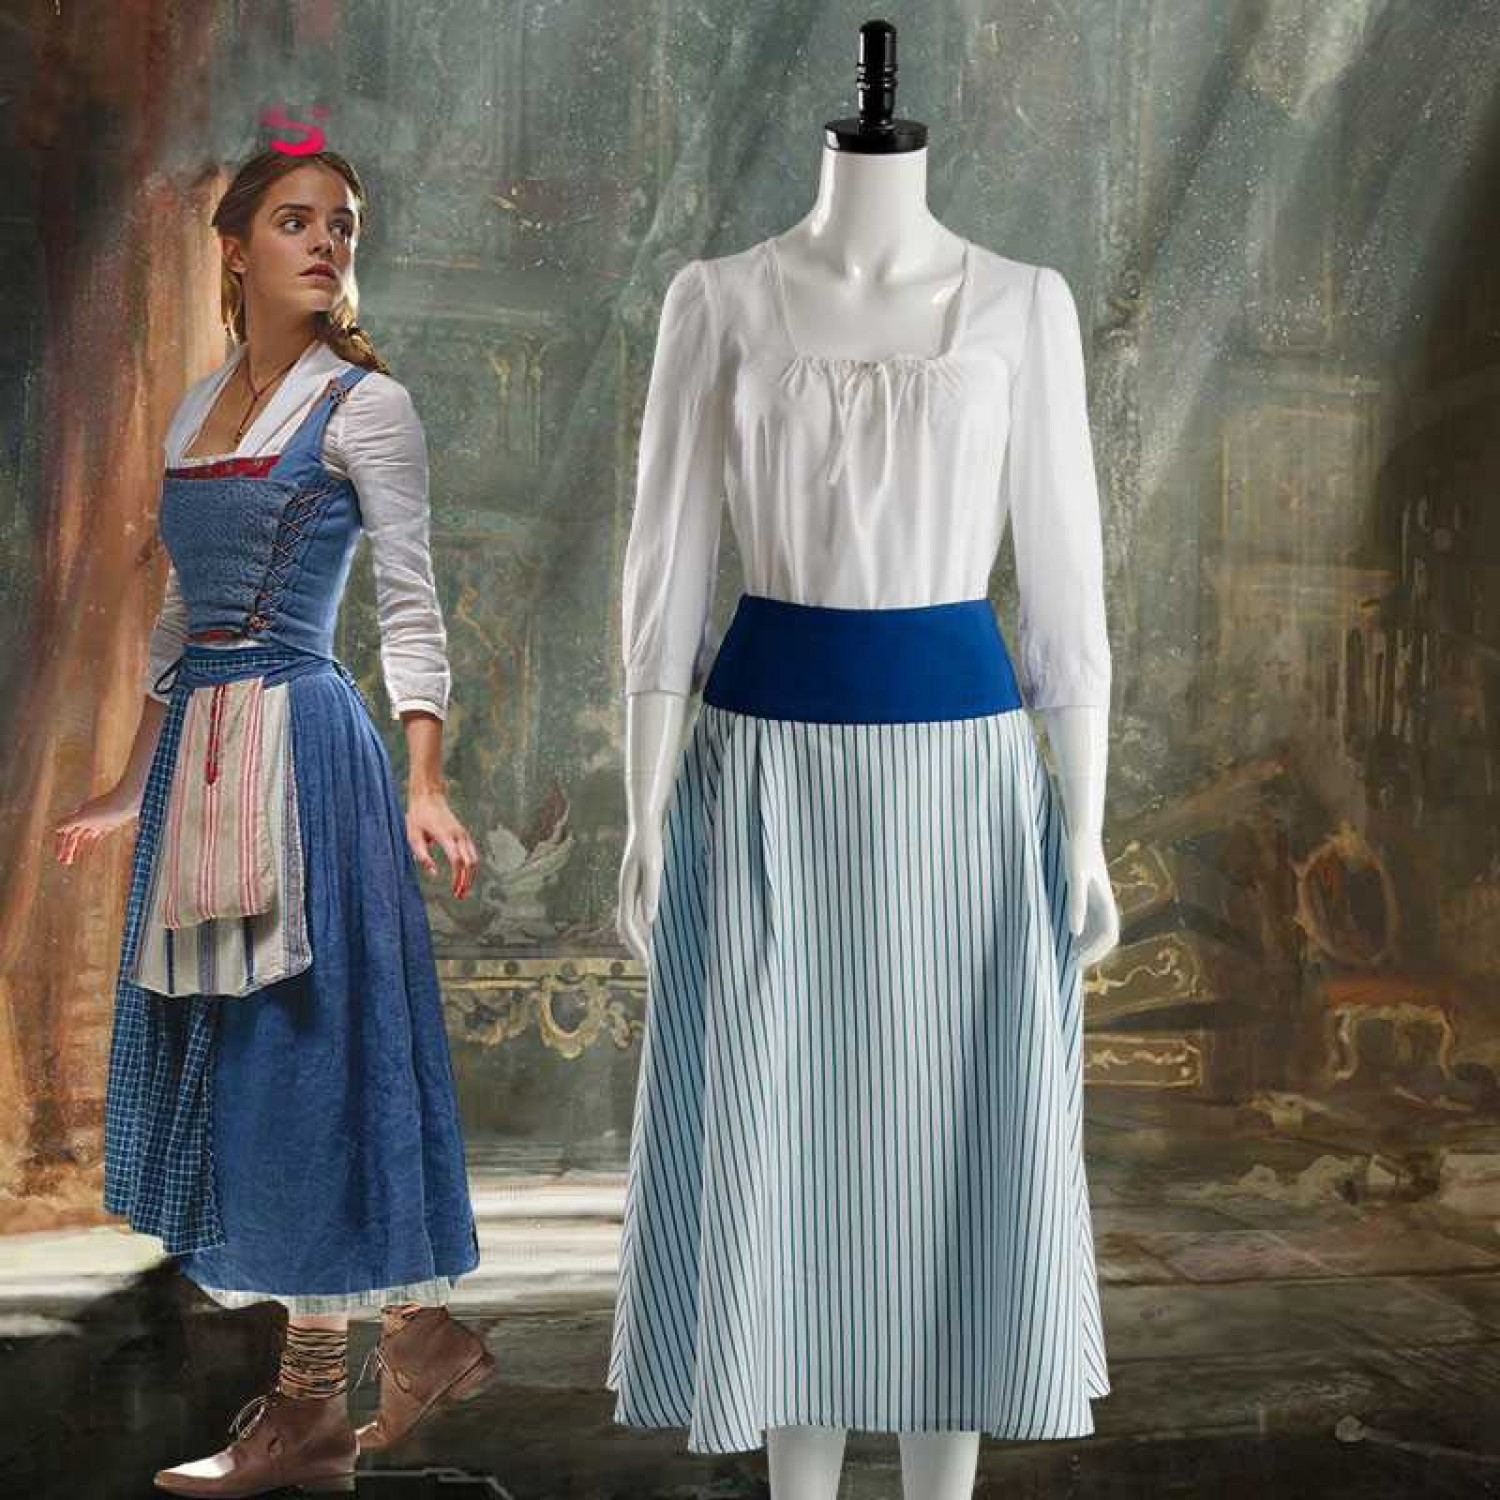 Beauty And The Beast Movie Belle Emma Watson Maid Dress Cosplay Costume